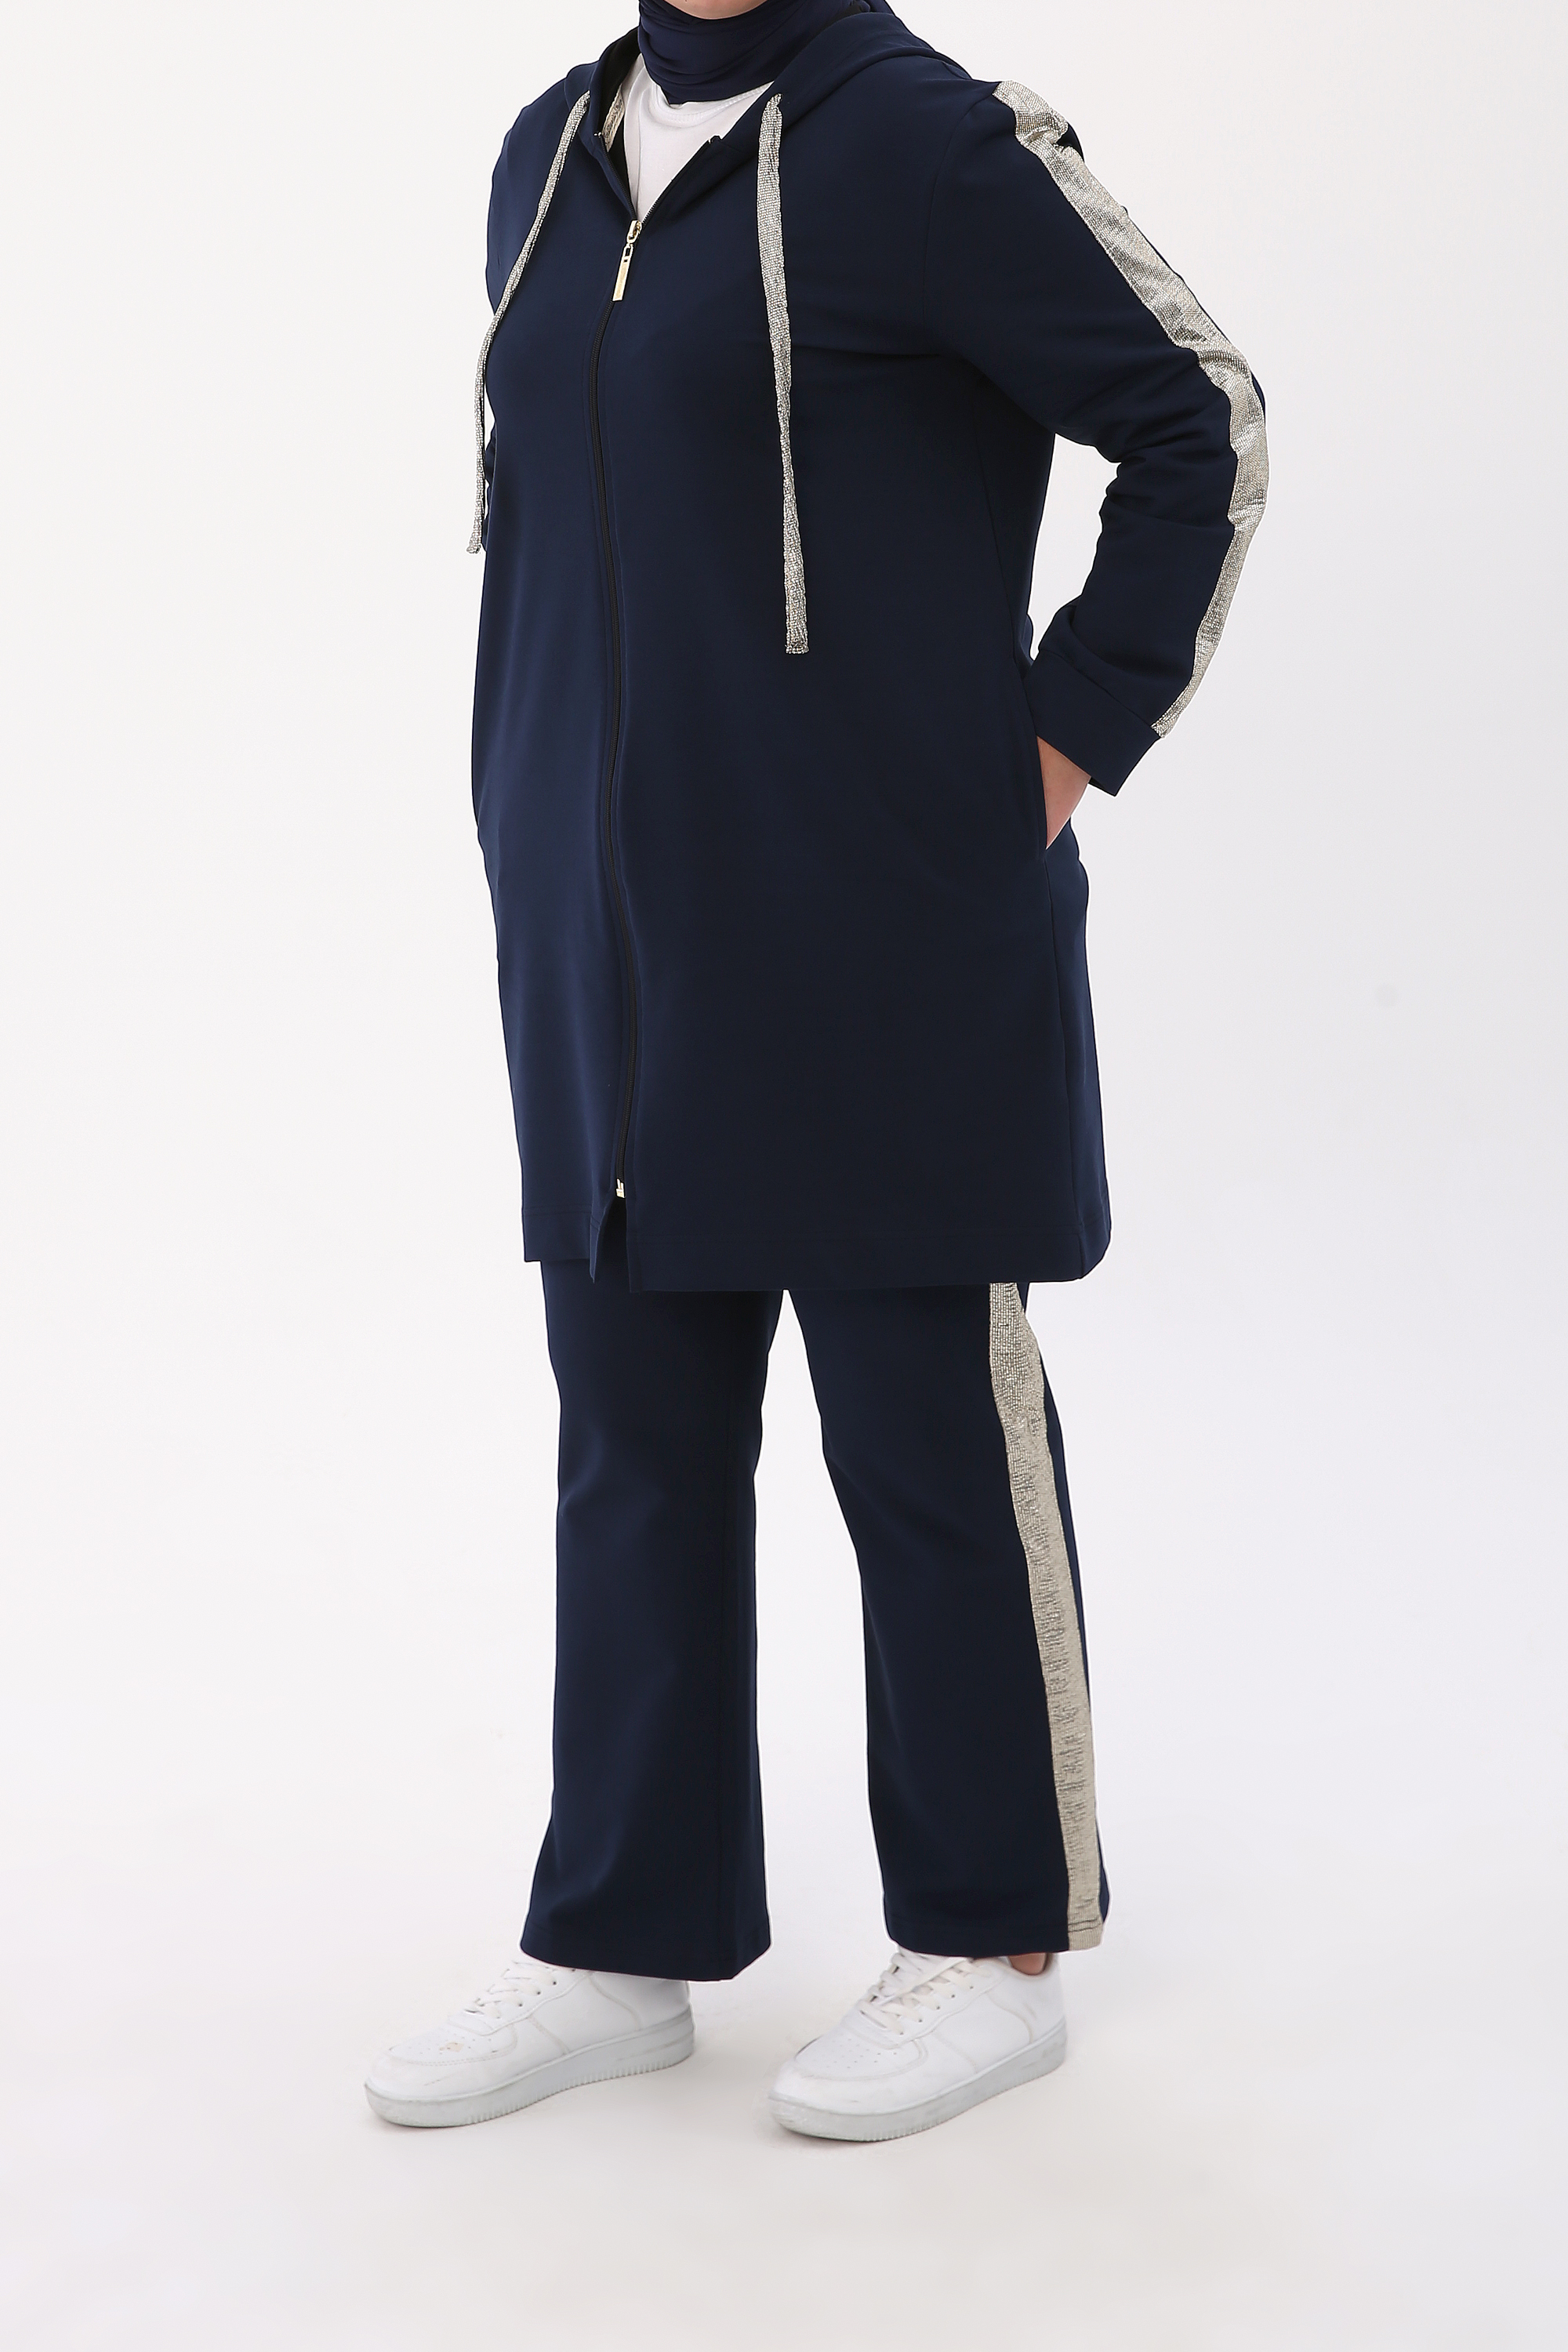 Hooded Zipper Front Plus Size Tracksuit